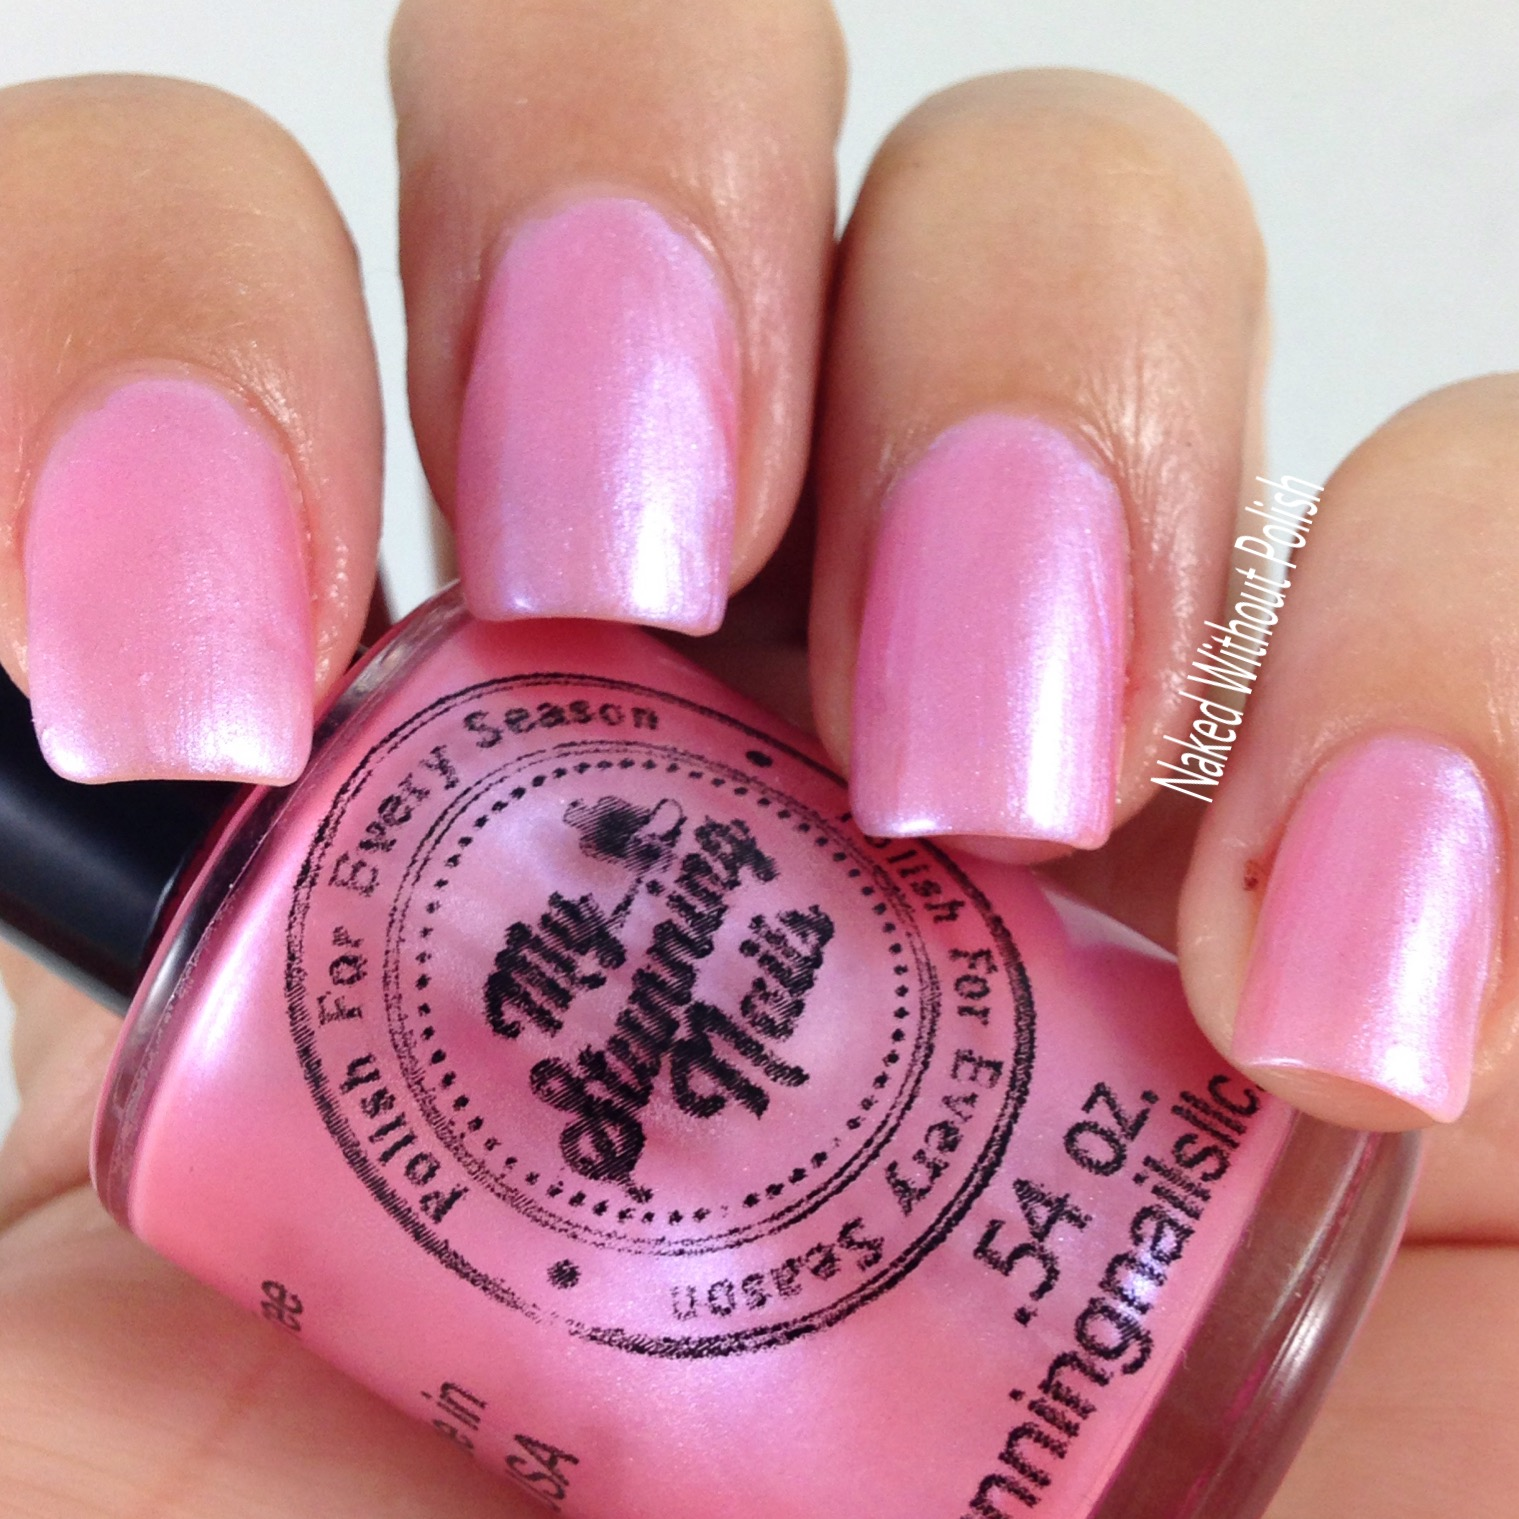 My-Stunning-Nails-Strawberry-Macaroon-5